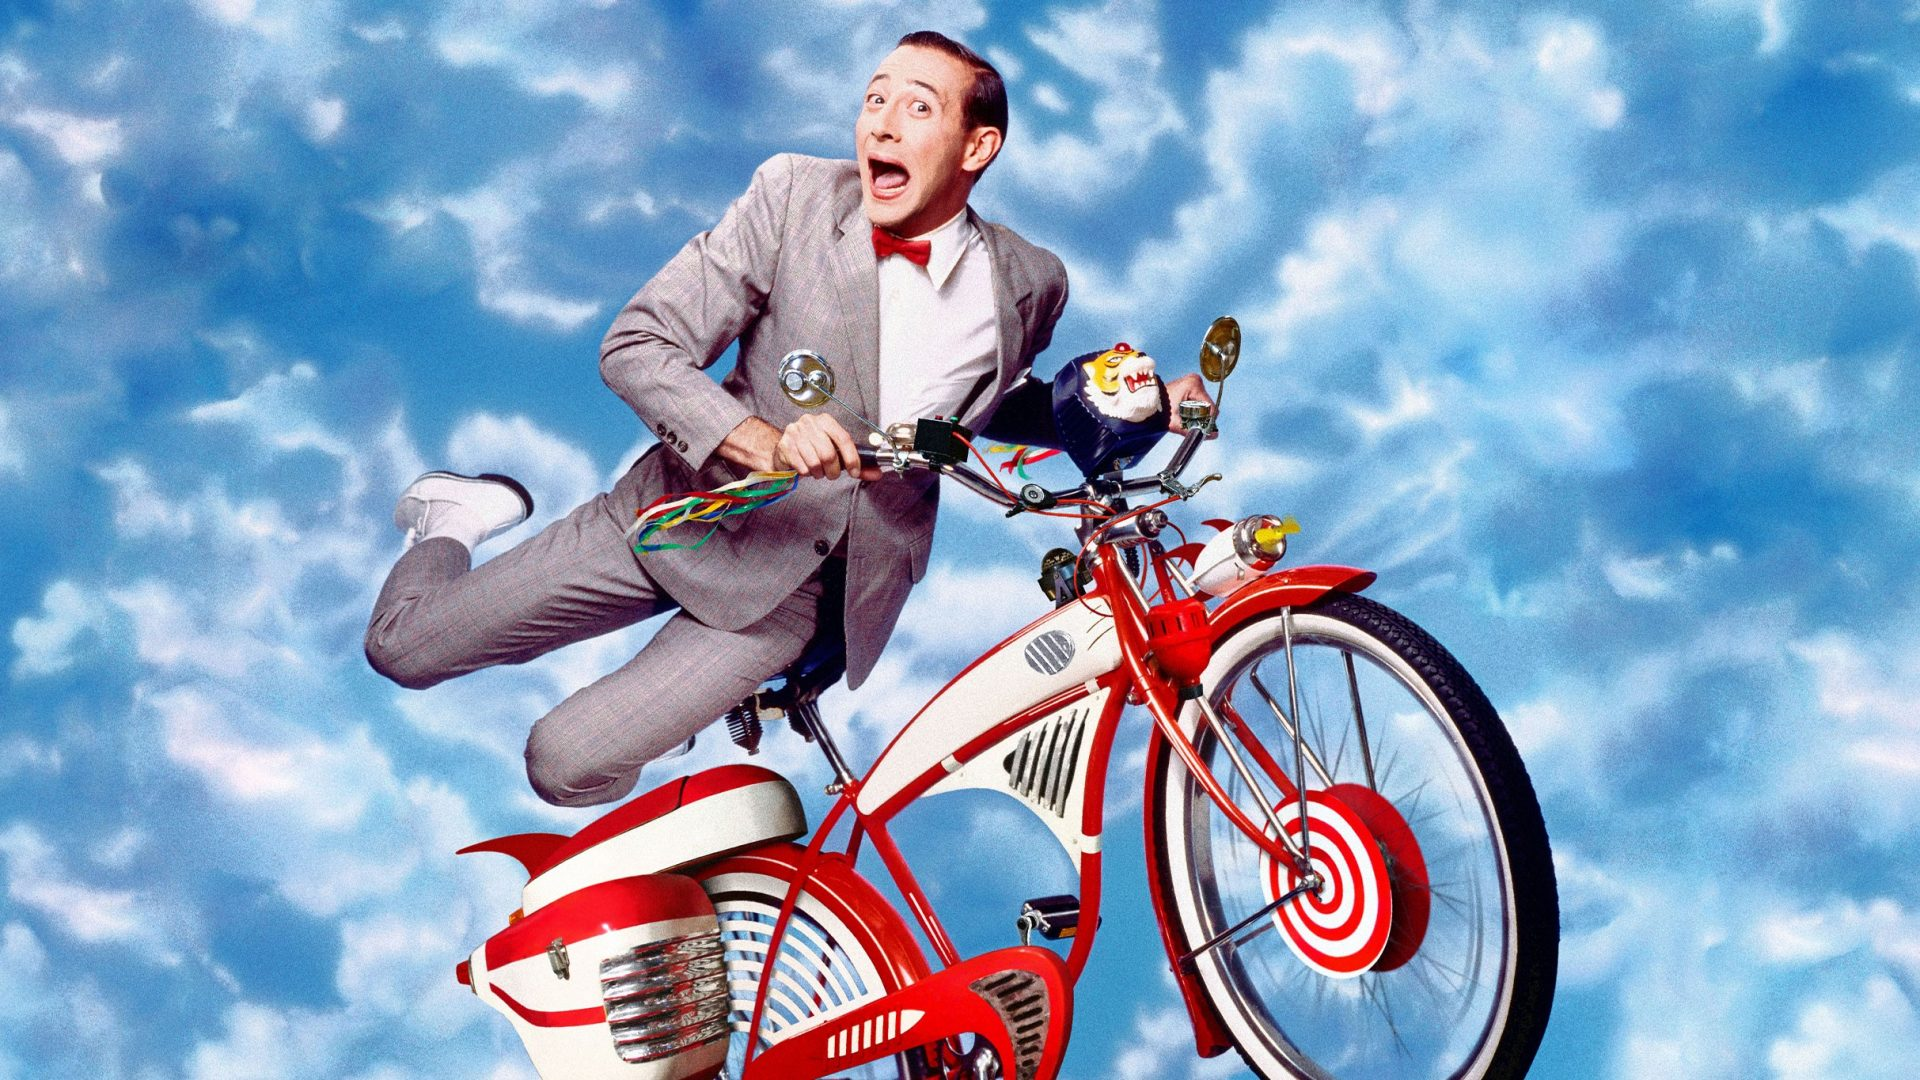 Lol A Dark PeeWee Herman reboot where hes an alcoholic might be 1920x1080